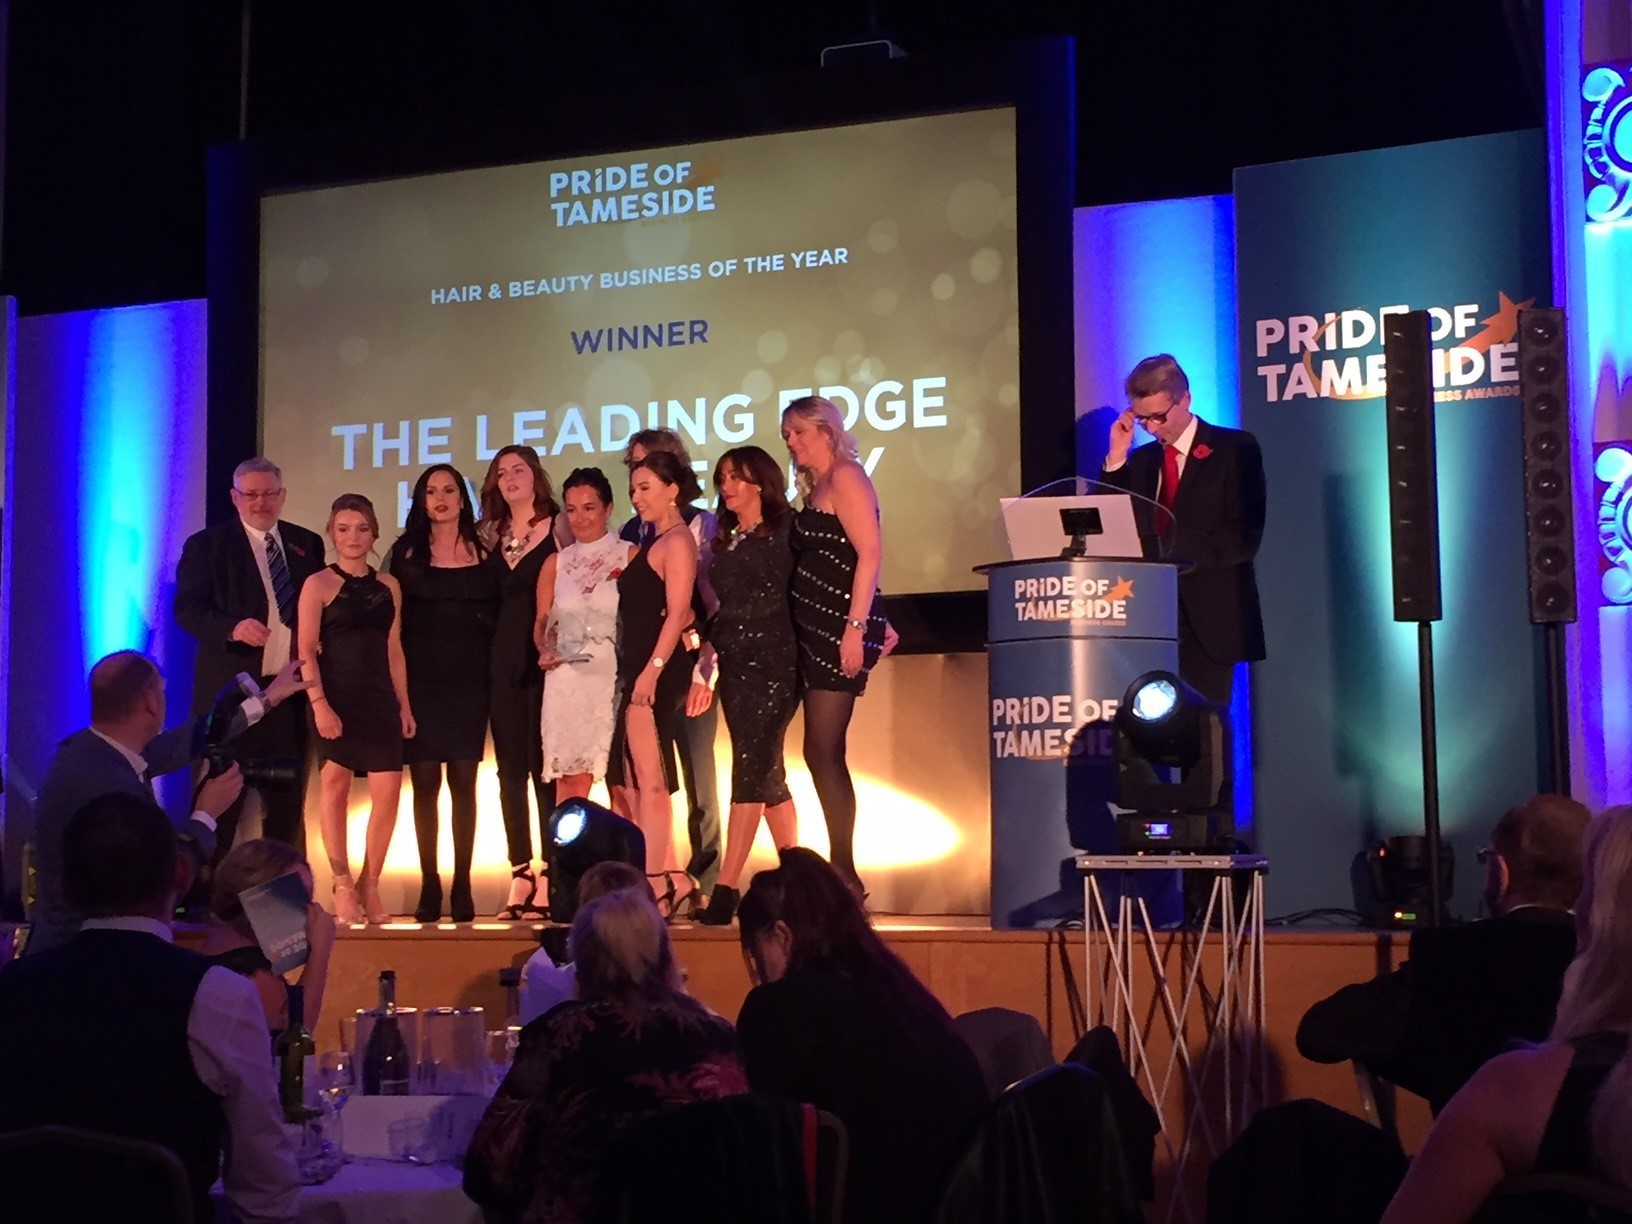 Tameside's Hair & Beauty business of the Year 2017